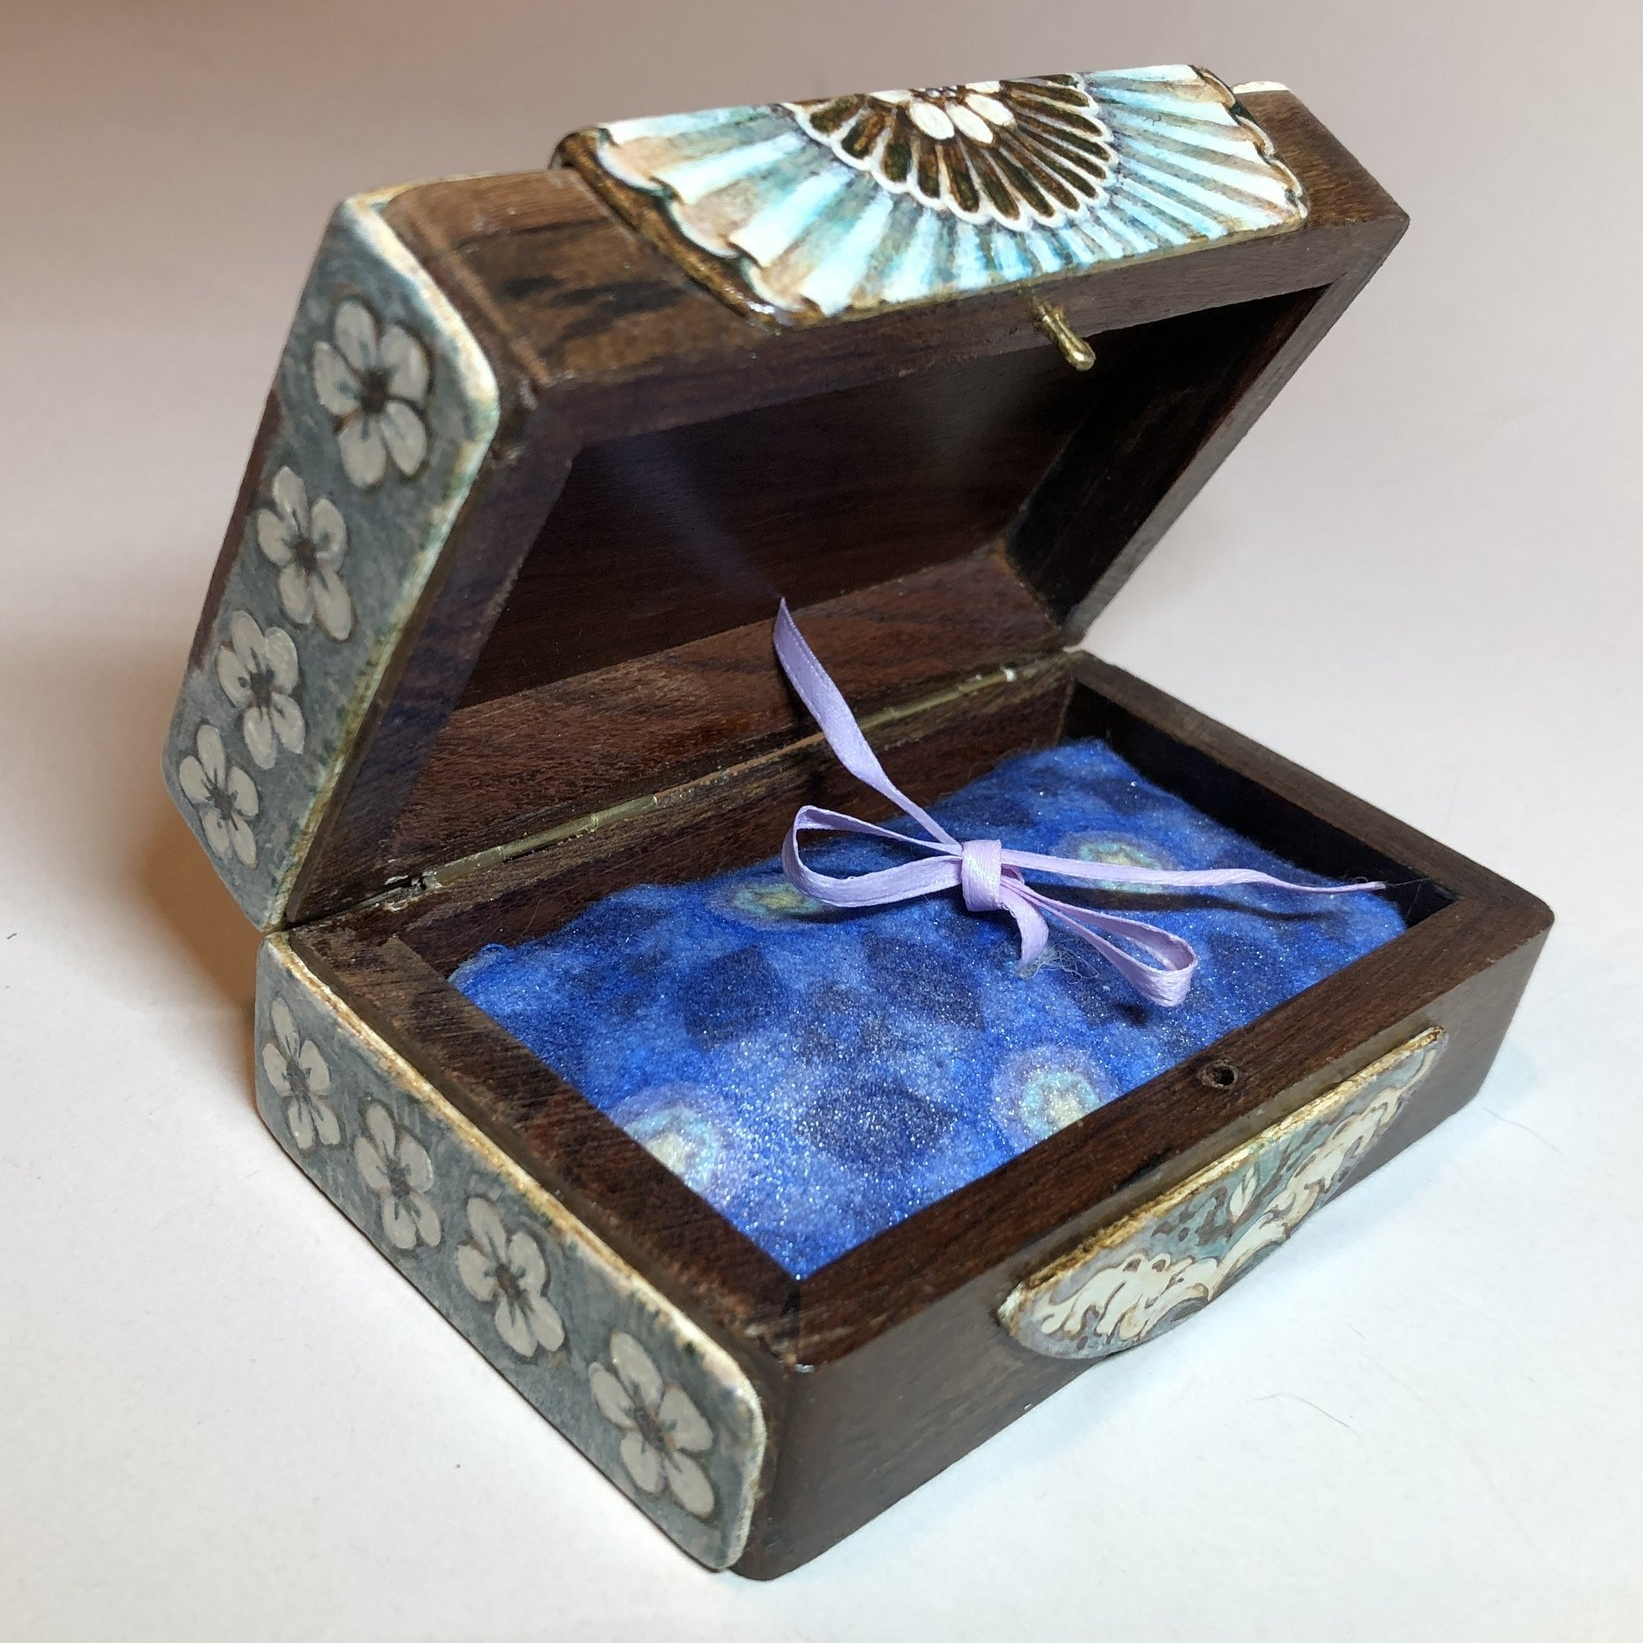 Ribbon swap and a glaze of iridescent medium...The finished Belvedere Box!